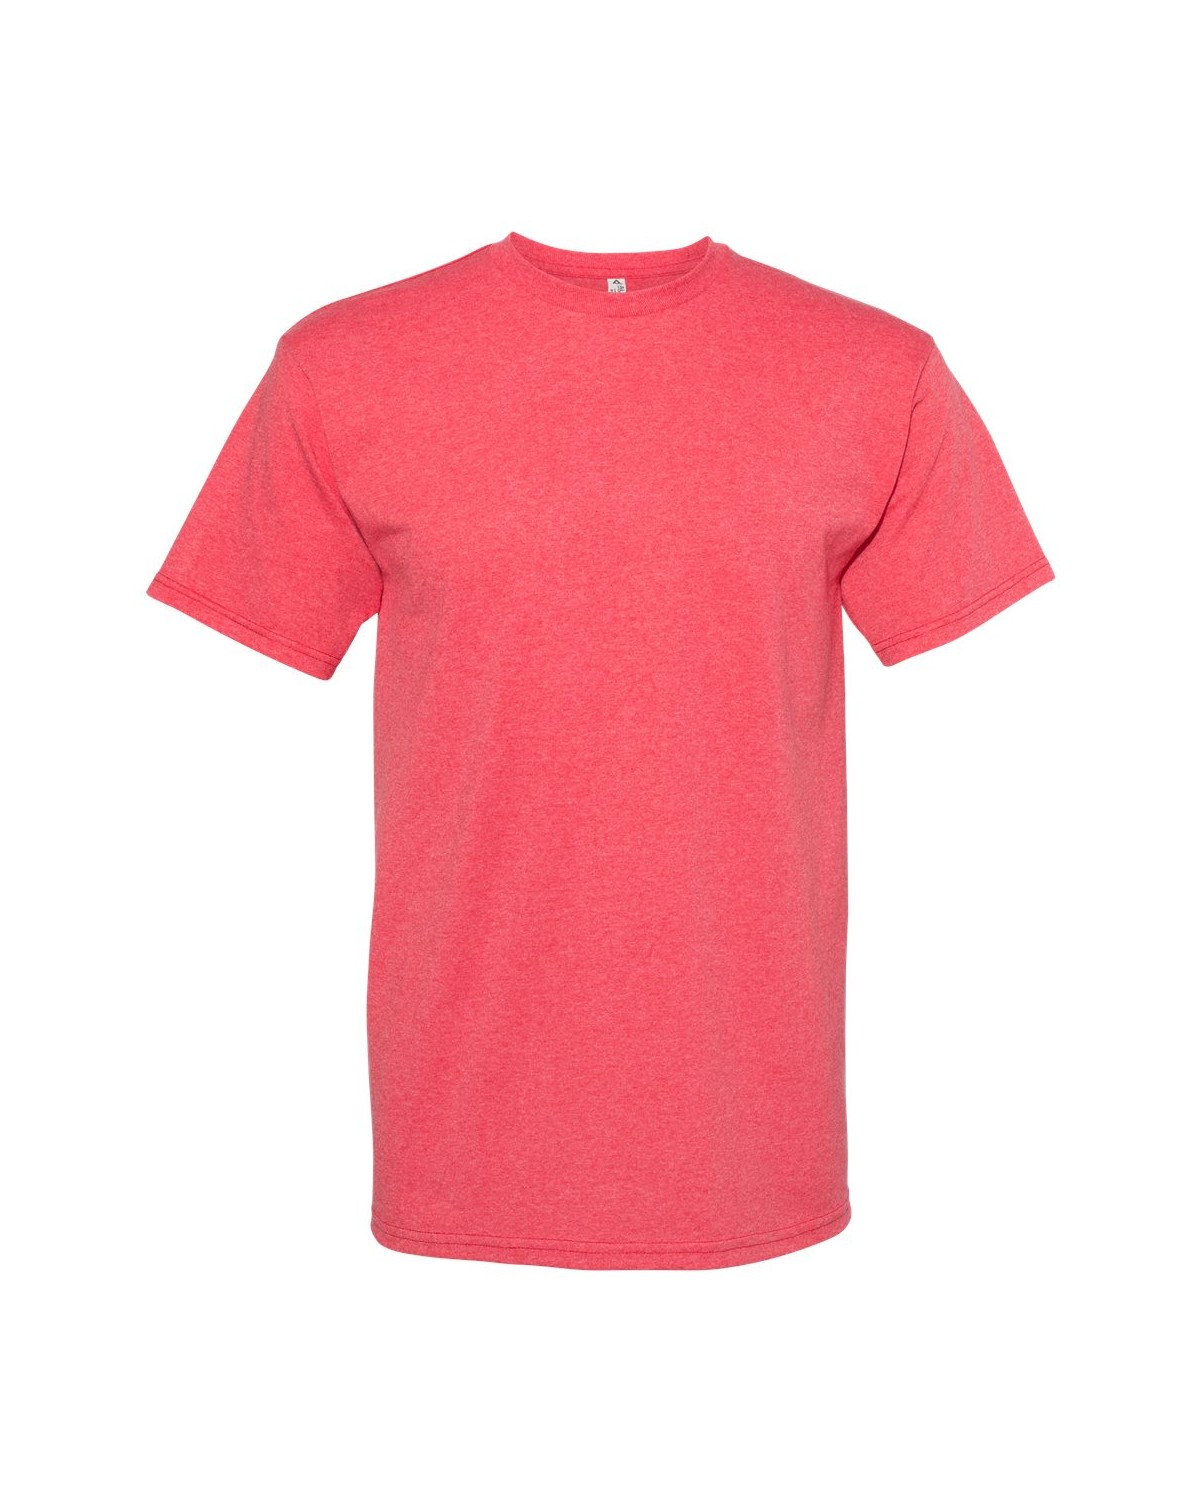 1701 Alstyle RED HEATHER